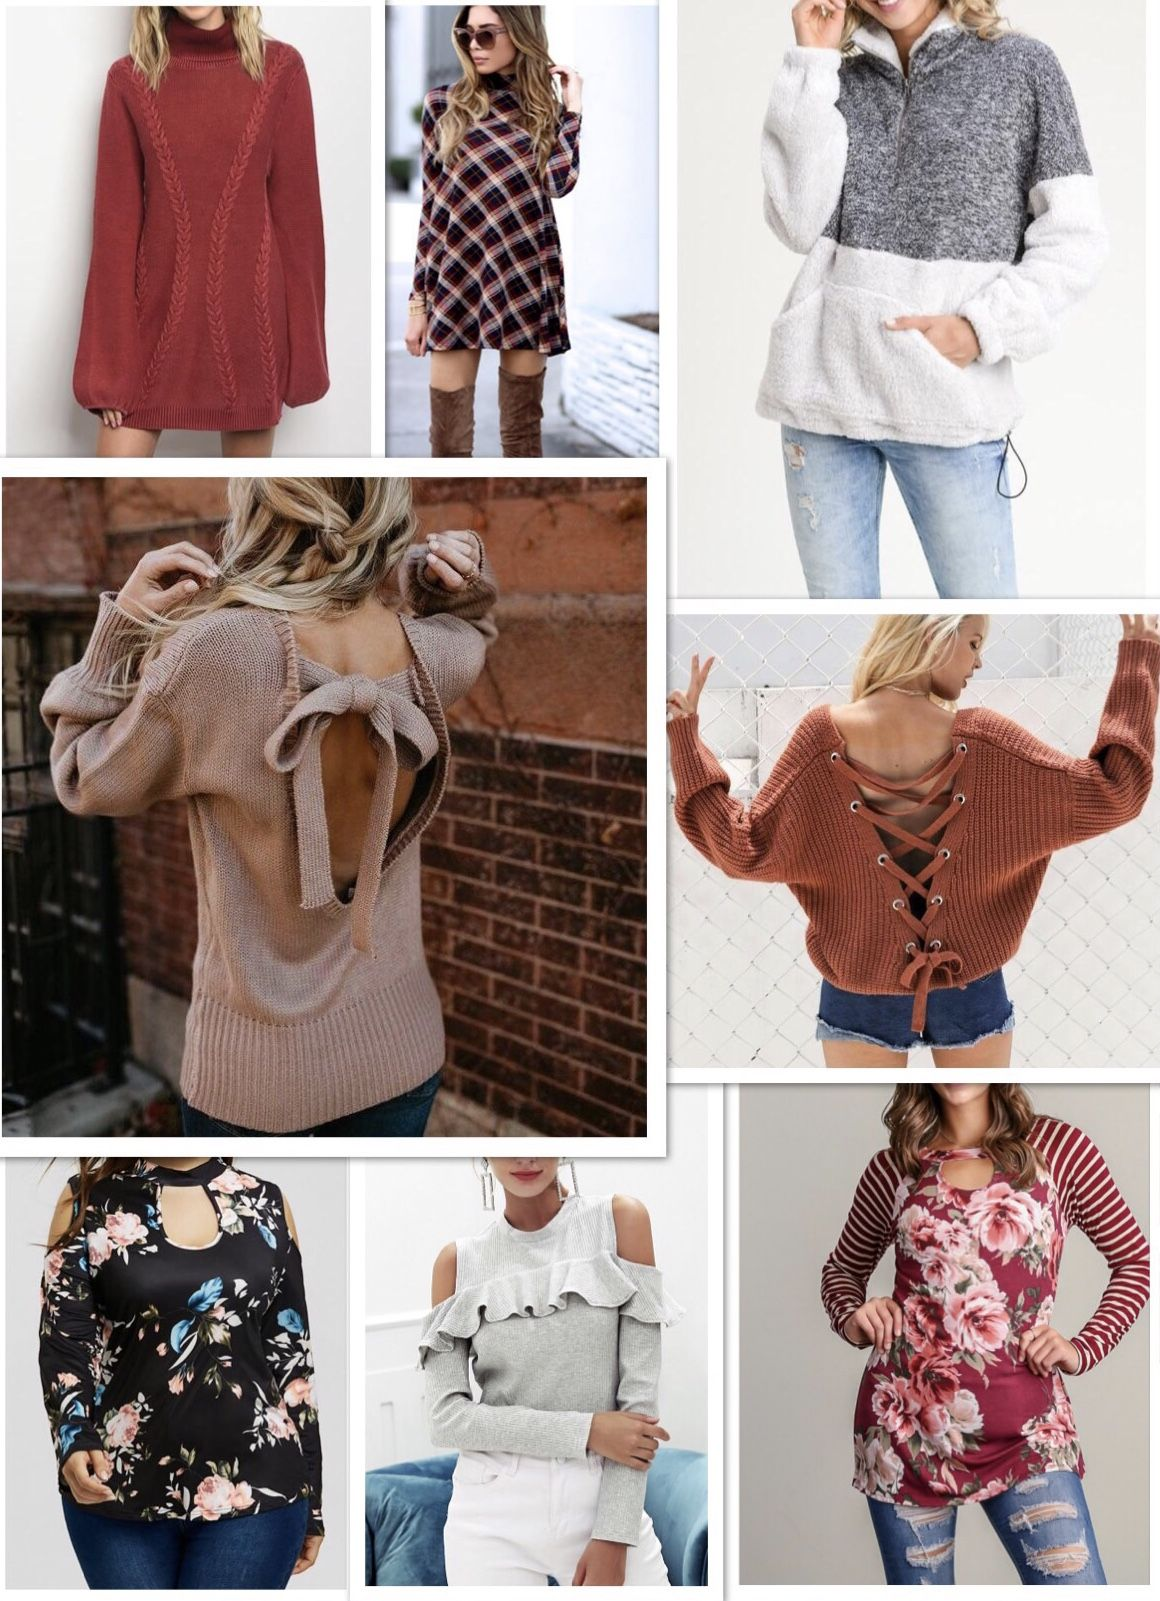 to wear - Fall eve stylish outfits video